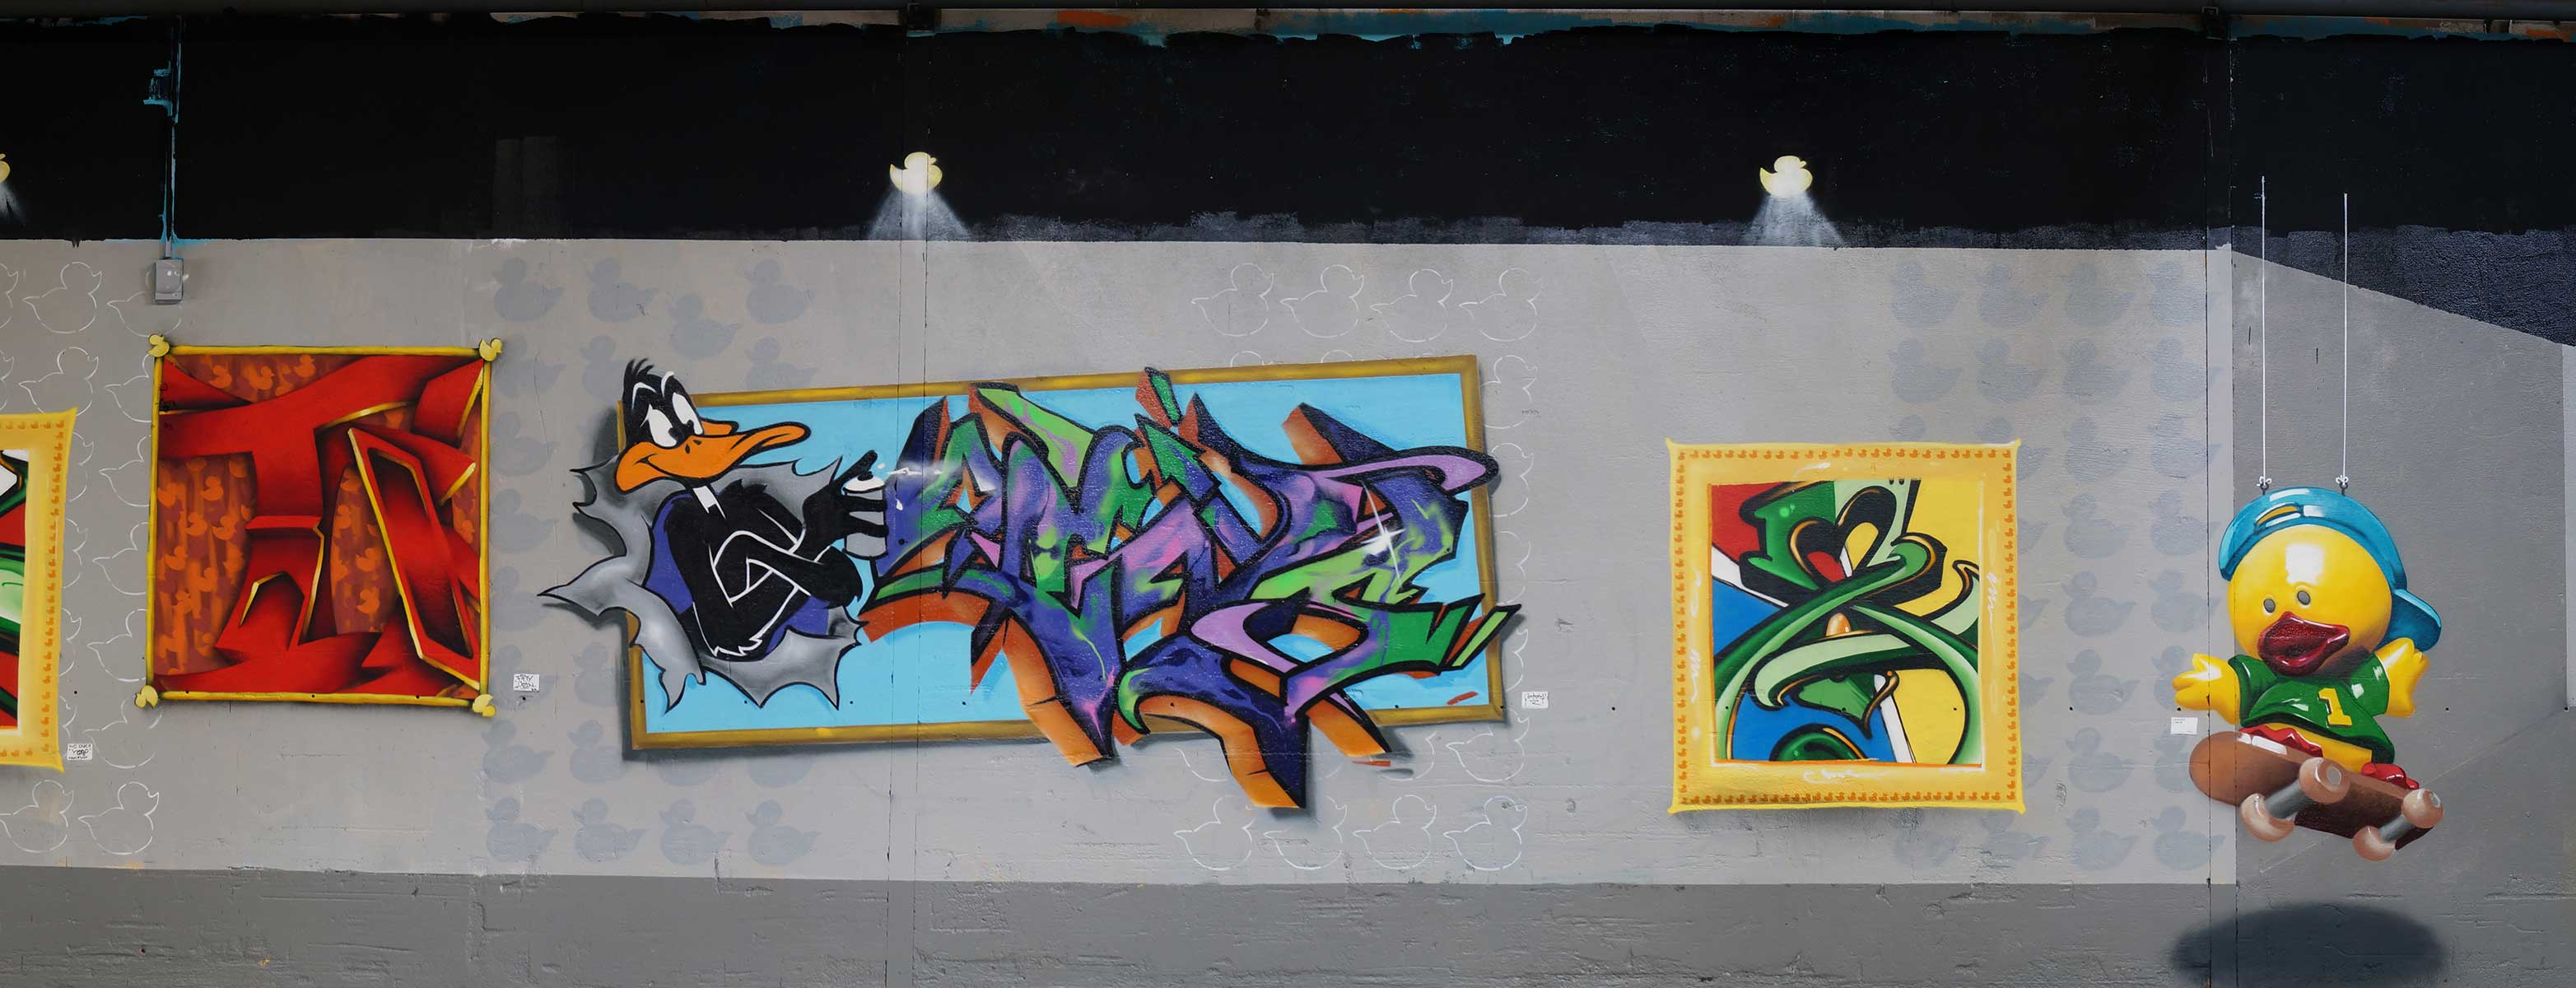 coincoin-museum-toulouse-graffiti_1